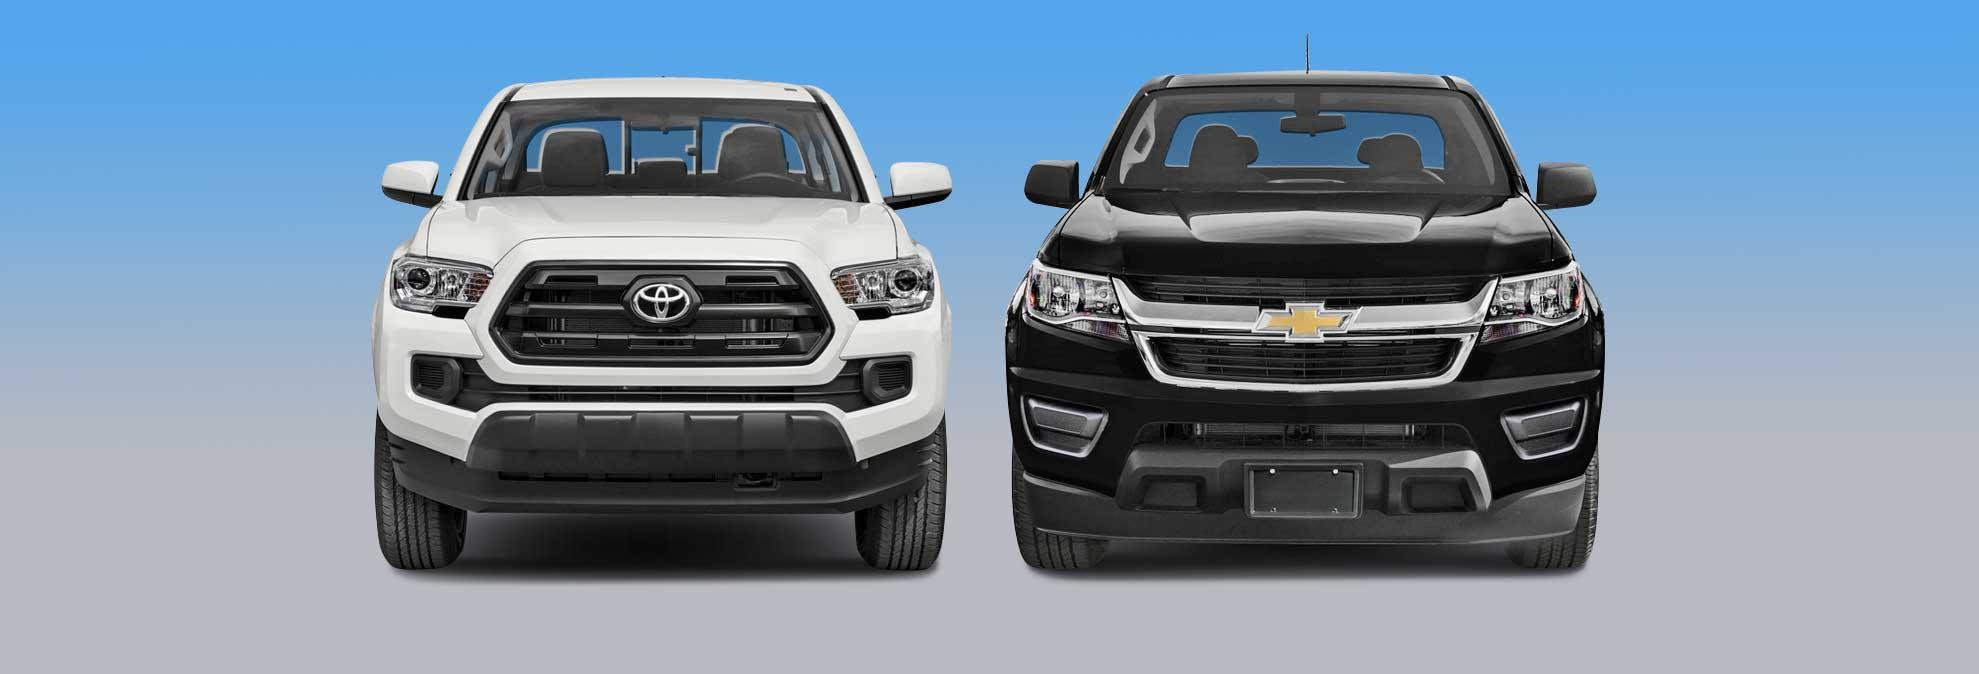 chevrolet colorado vs toyota tacoma which should you buy. Black Bedroom Furniture Sets. Home Design Ideas